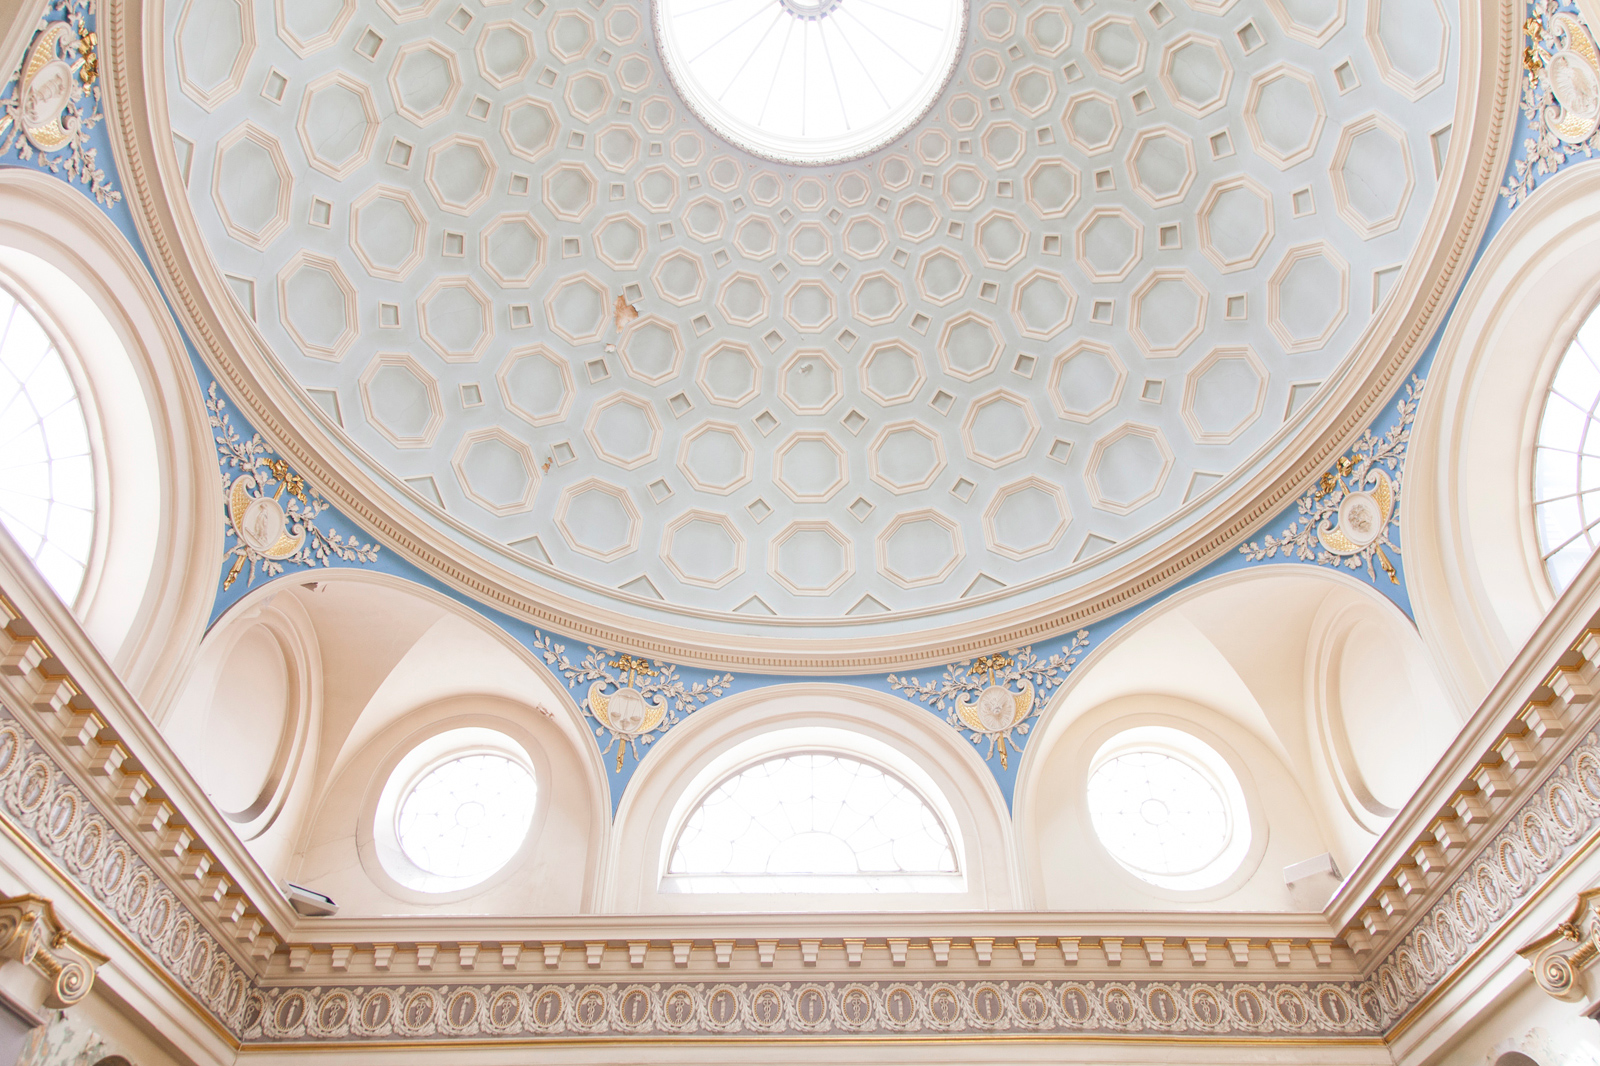 Old-Sessions-House-x-The-Spaces-by-Emli-Bendixen_The great dome